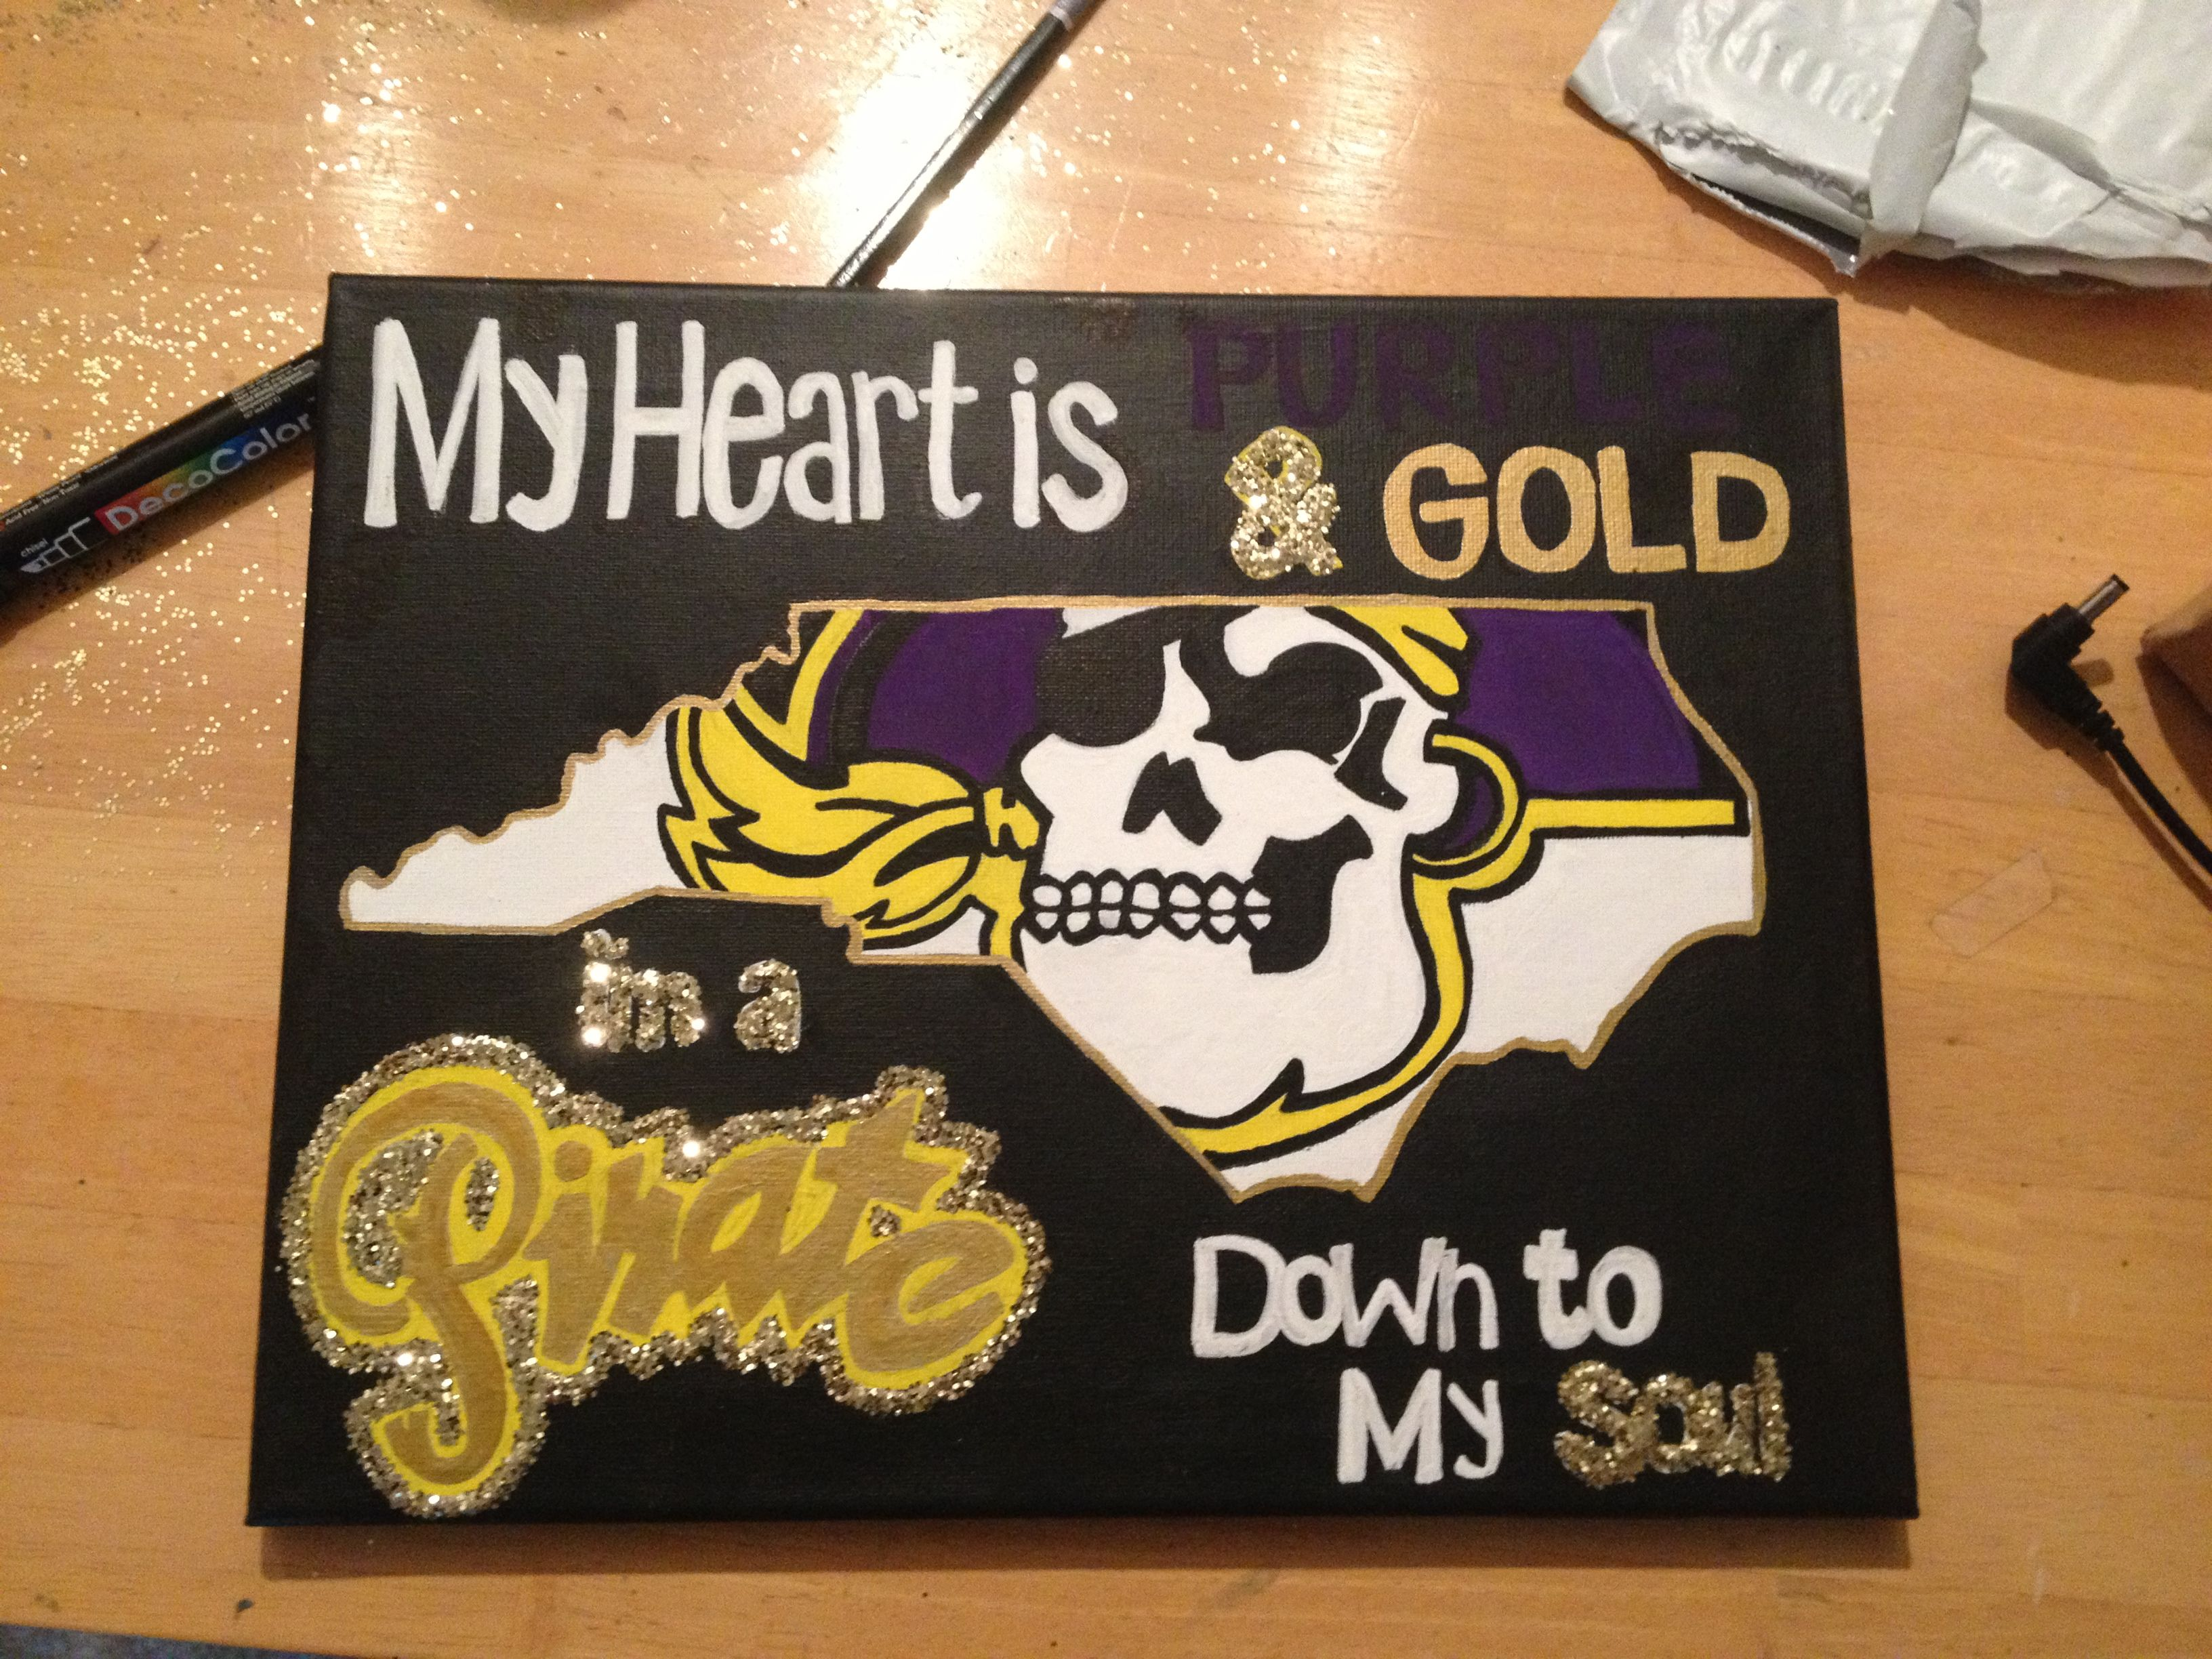 Color printing ecu - My Heart Is Purple And Gold I M A Pirate Down To My Soul